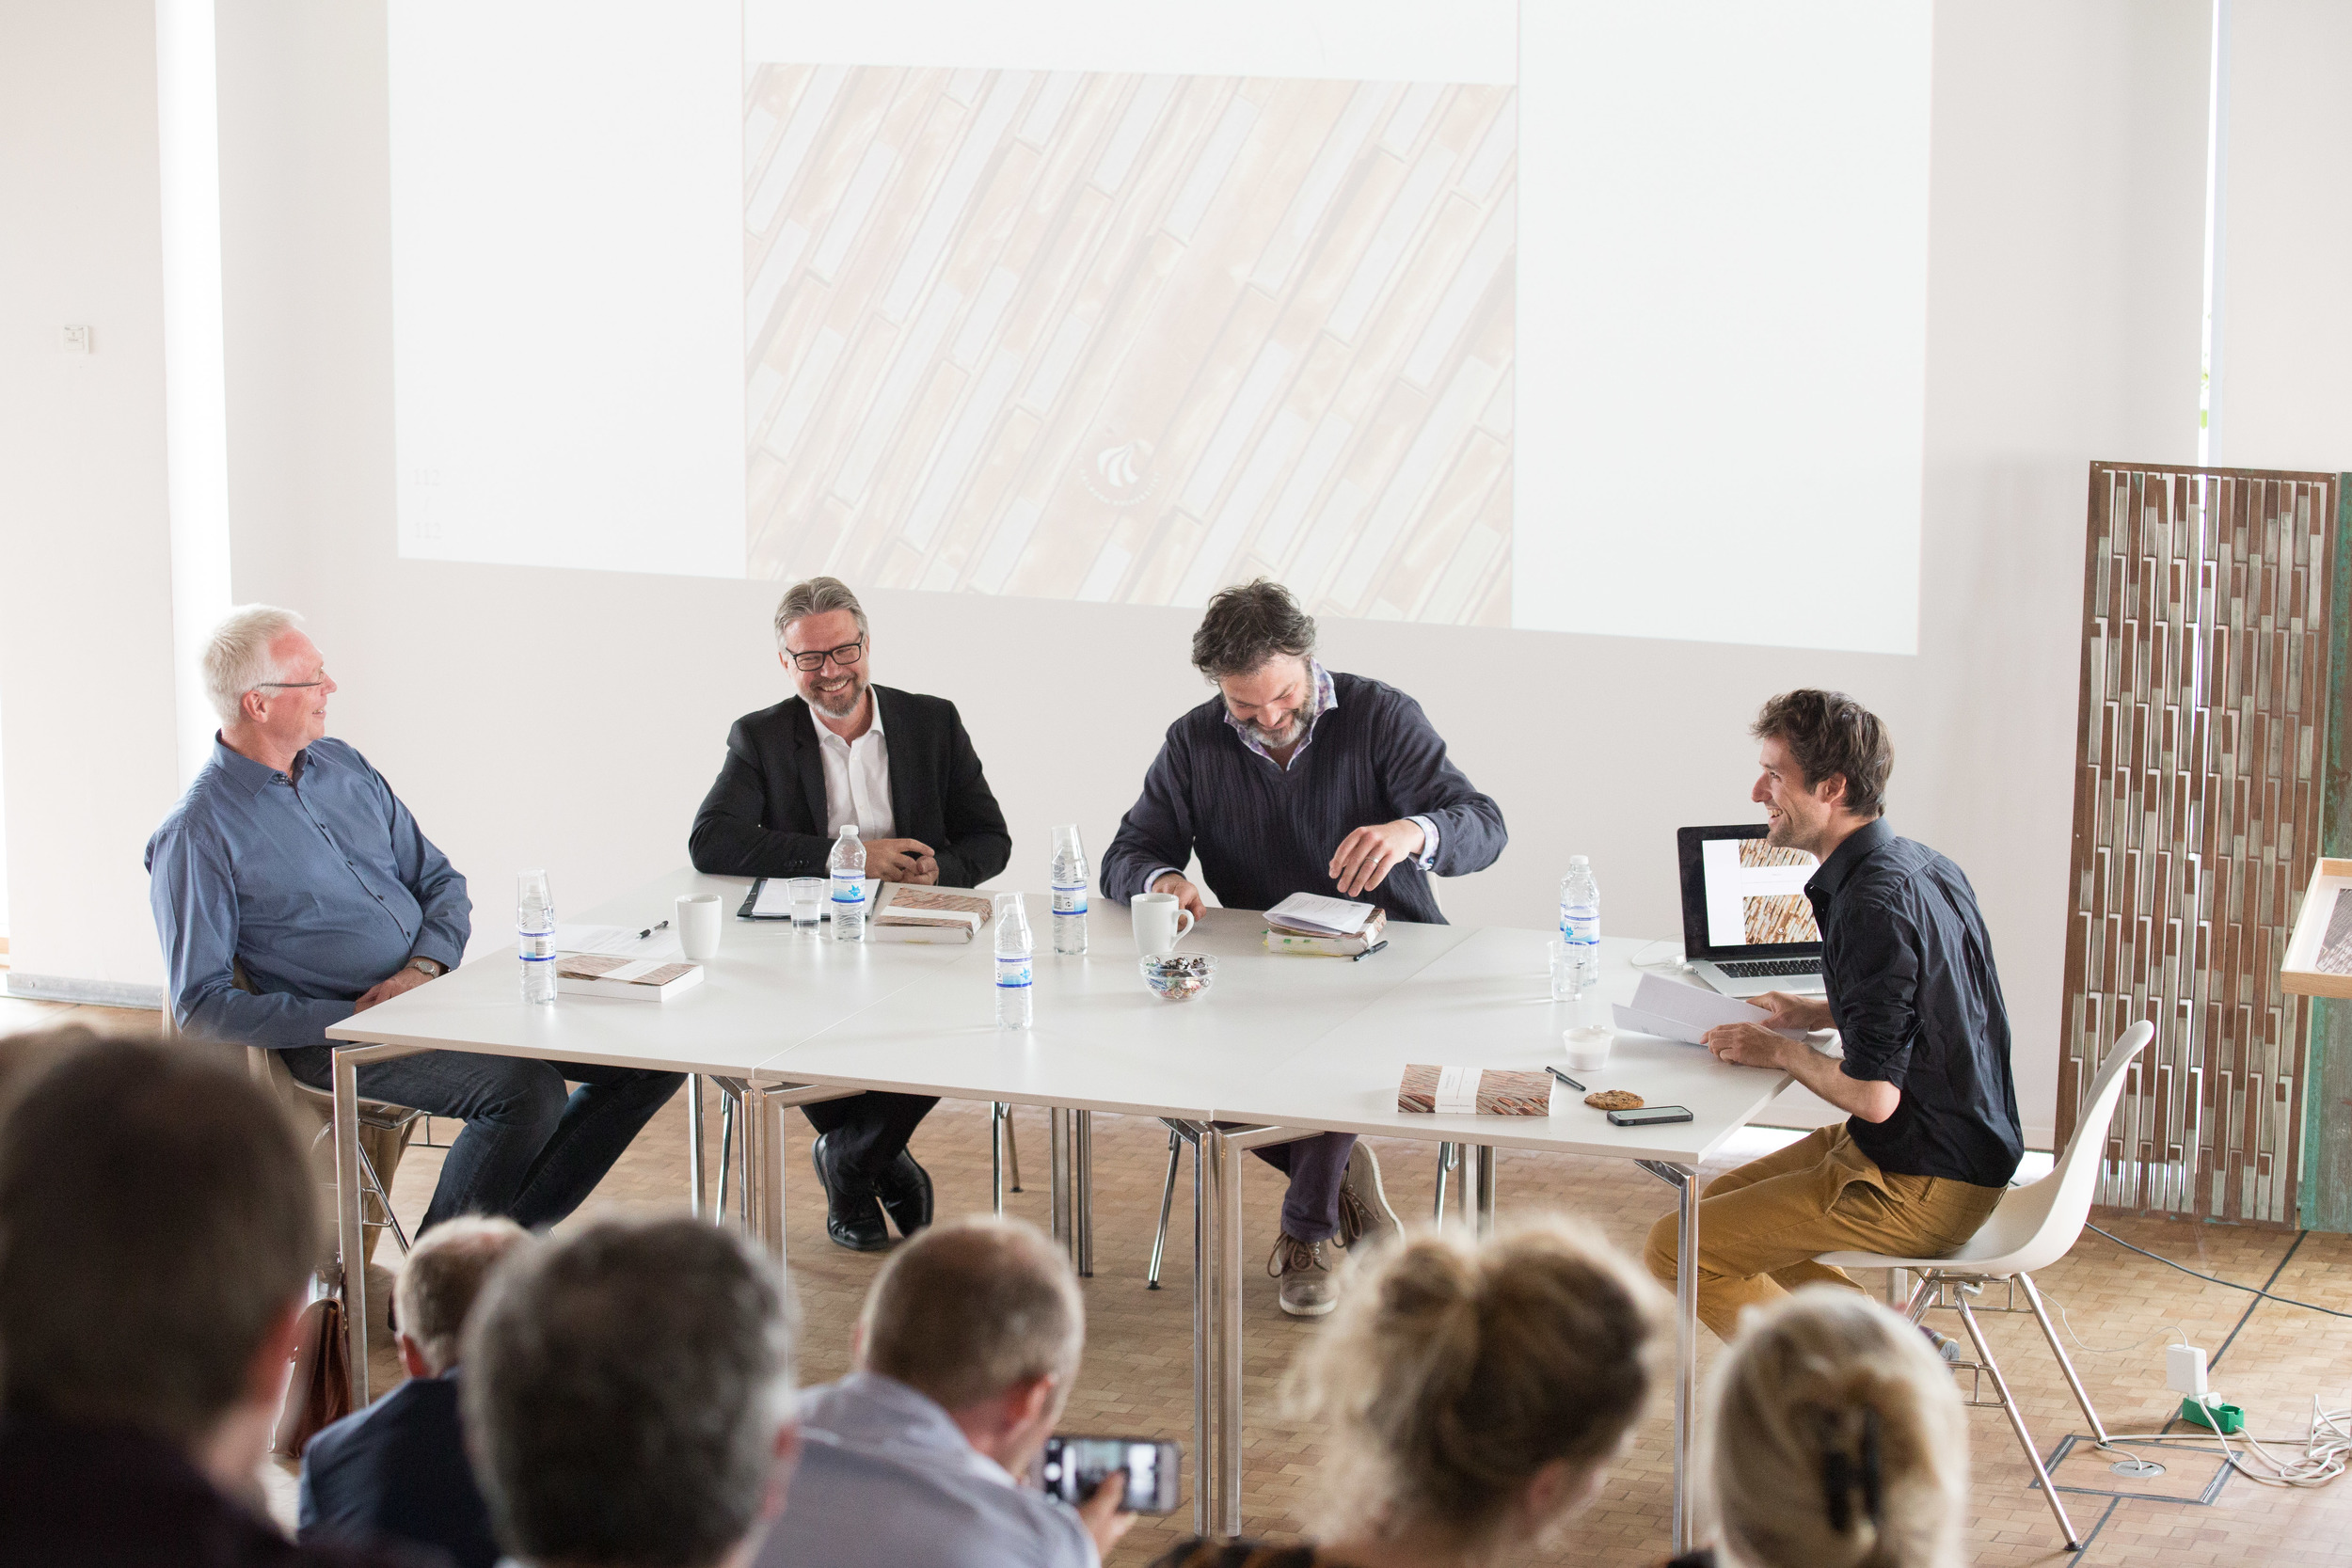 Isak has defended his PhD thesis 'Environmental Tectonics - Matter Based Architectural Computation' in the Utzon Center auditorium through an engaging and inspiring discussion with the assessment committee.